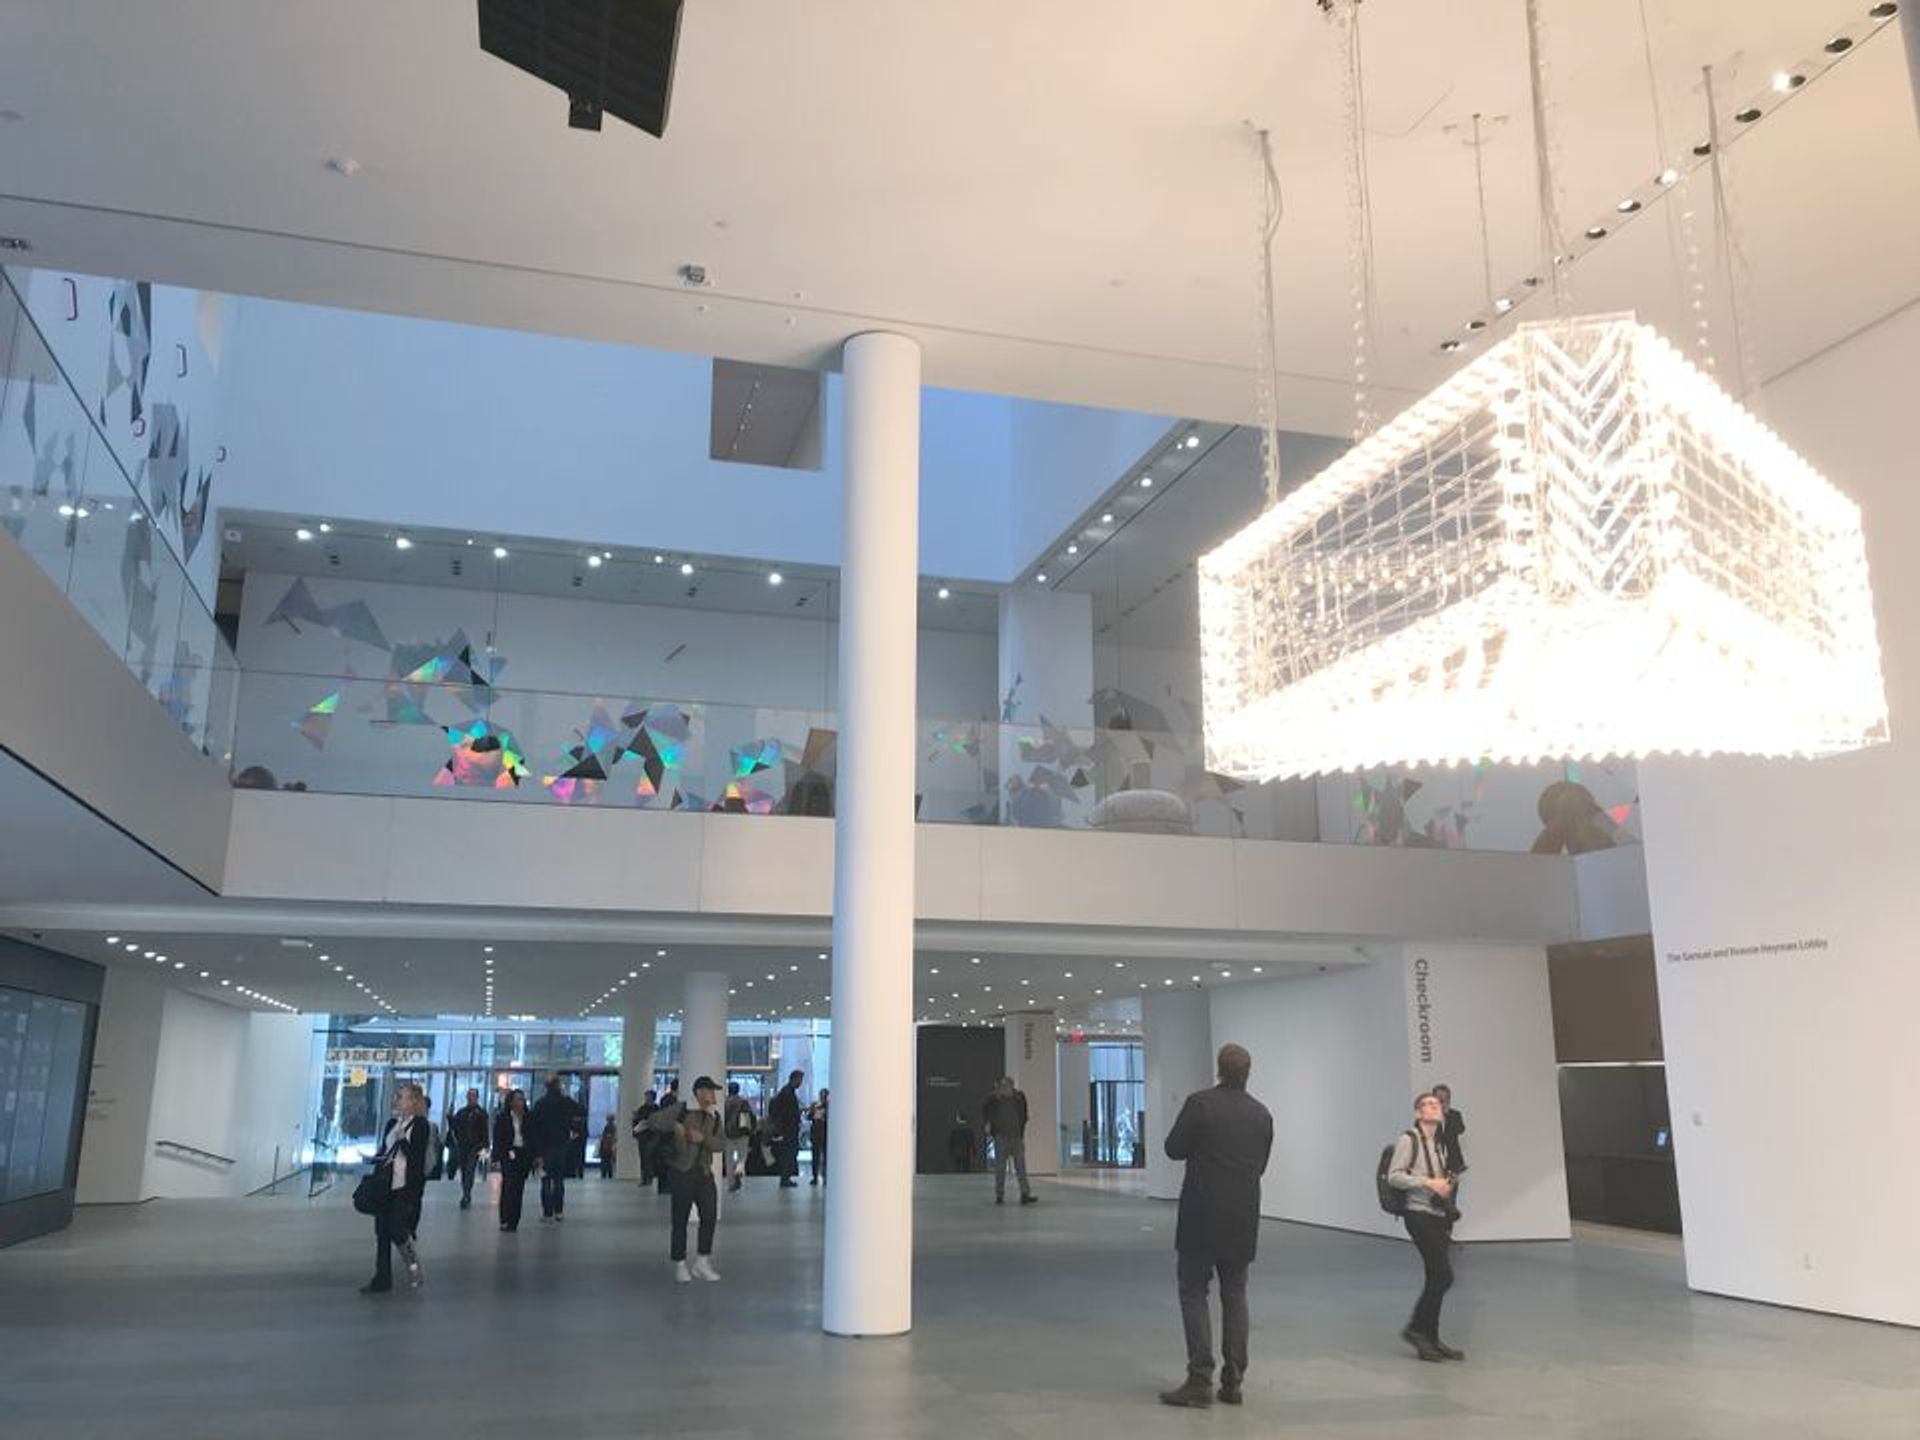 The lobby and atrium of the Museum of Modern Art at its grand reopening last October. © Helen Stoilas, The Art Newspaper